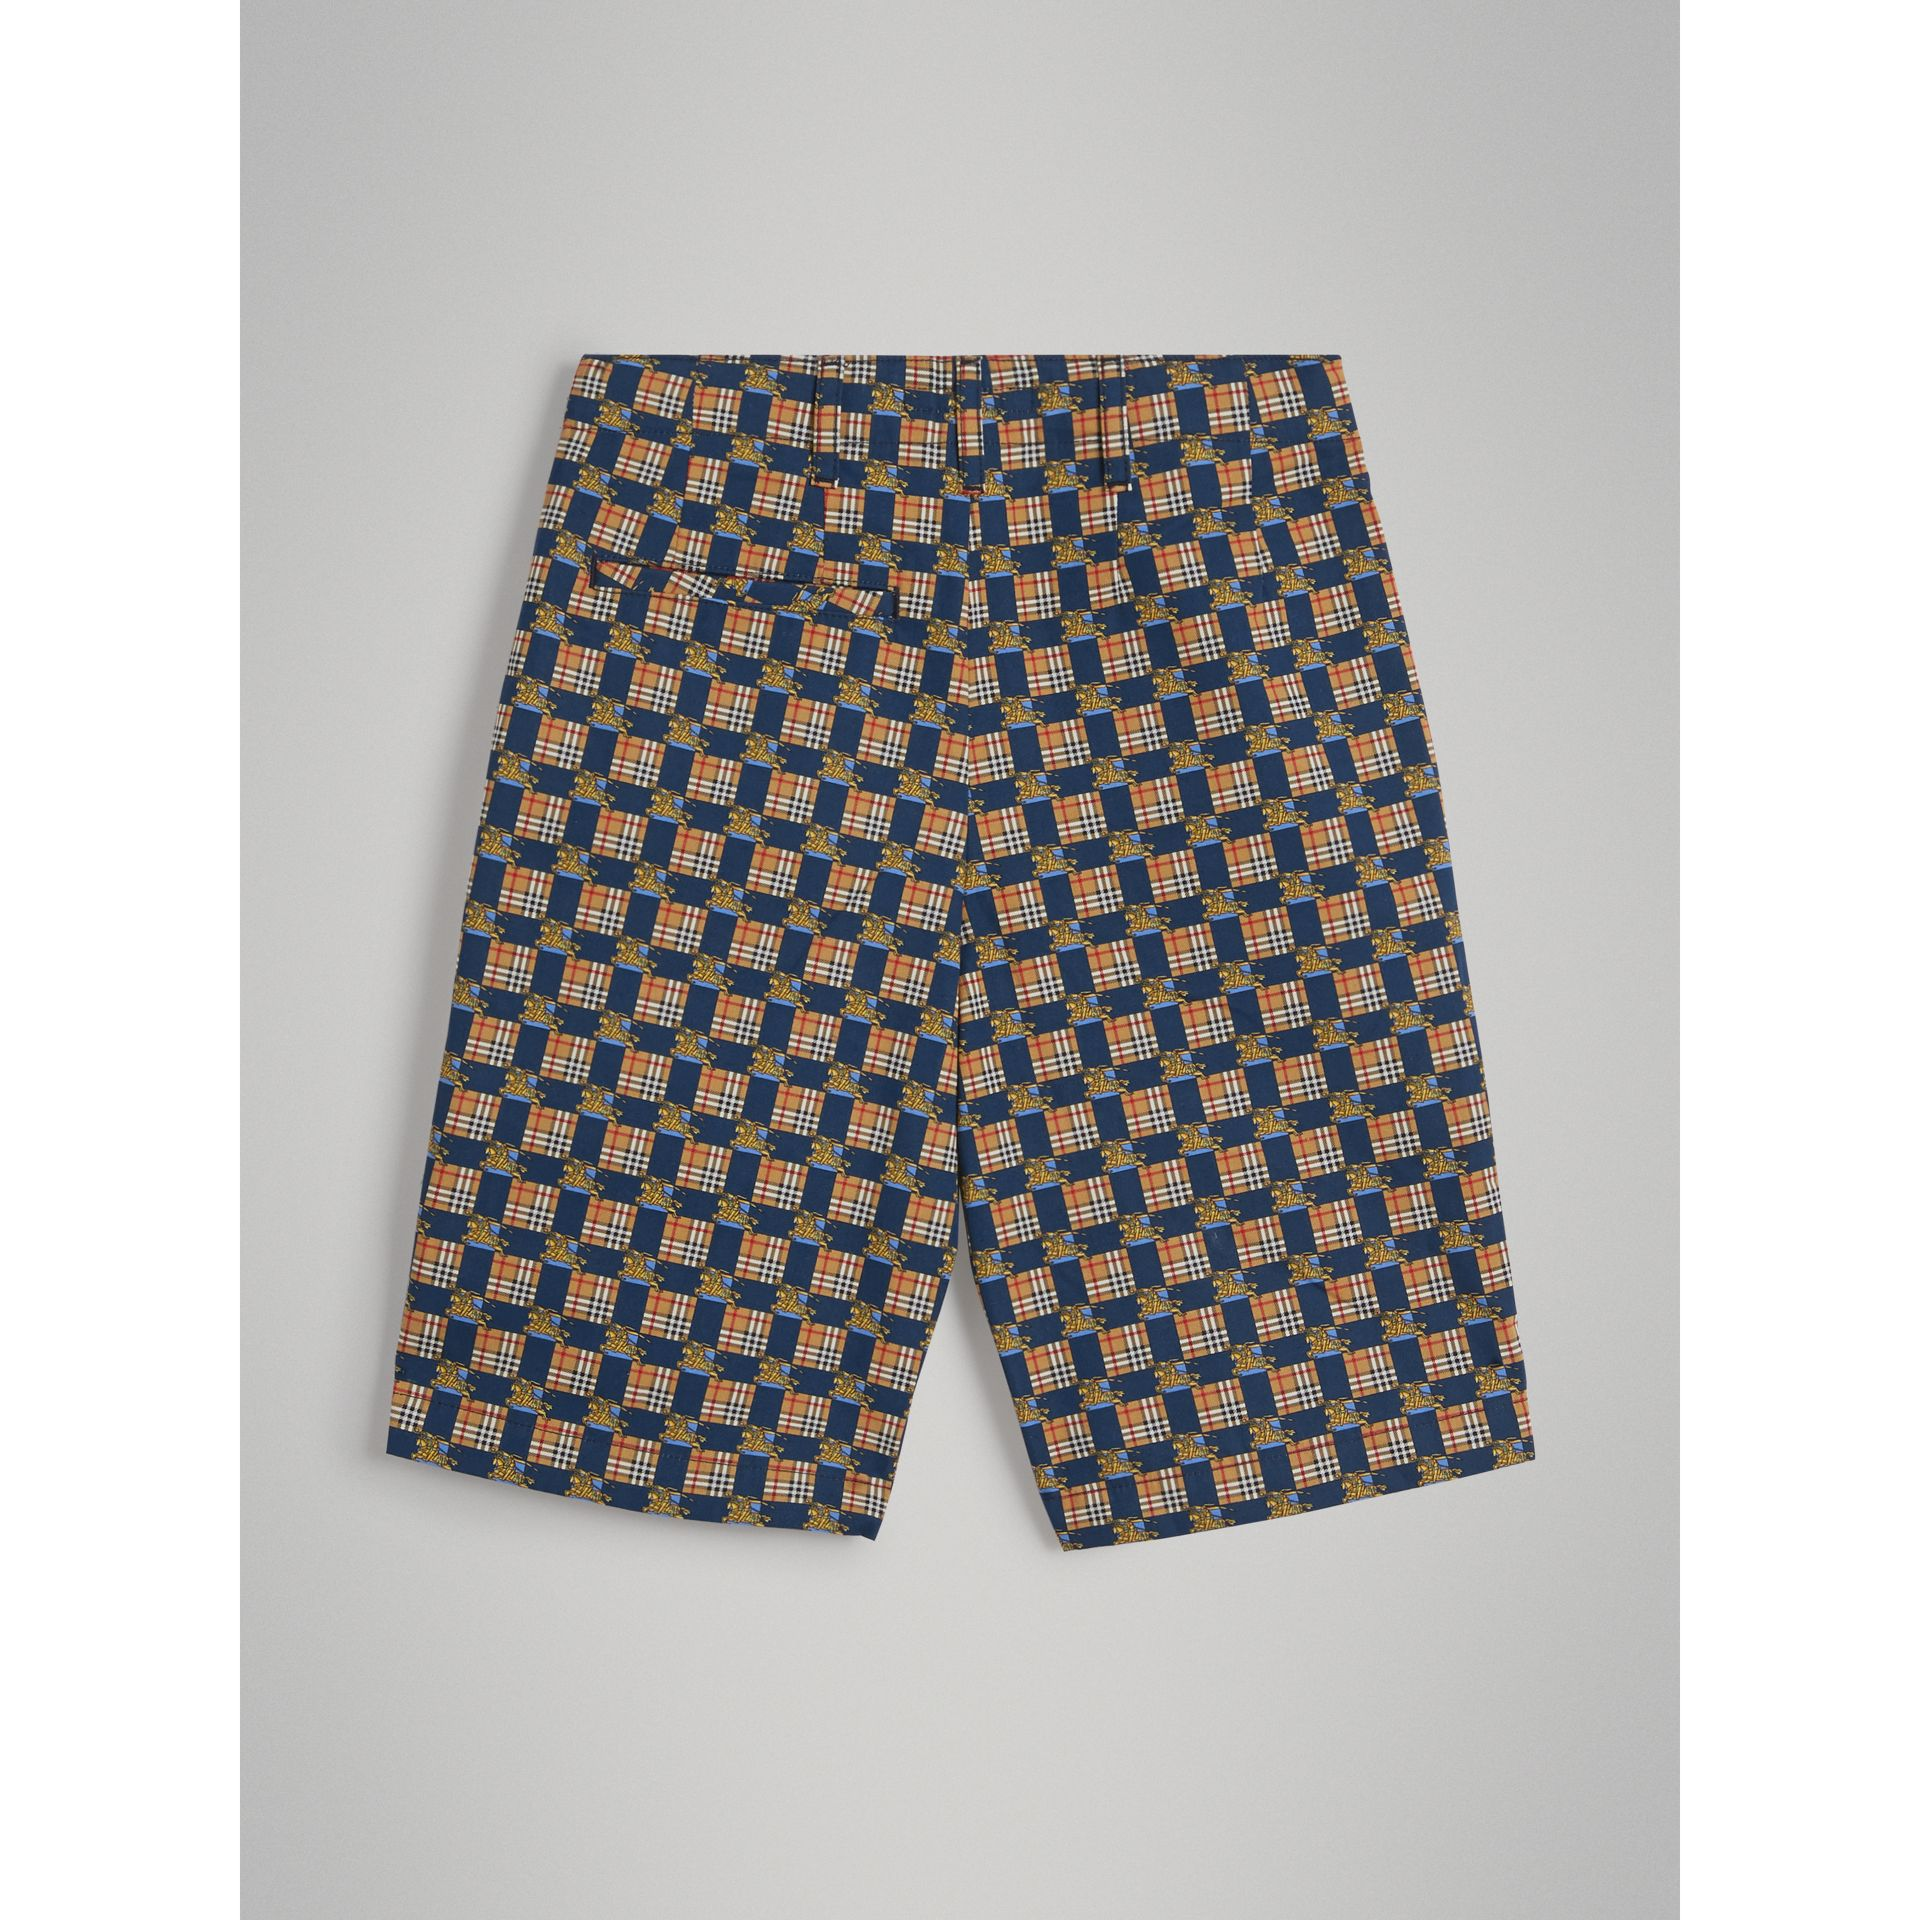 Tiled Archive Print Cotton Shorts in Navy | Burberry United Kingdom - gallery image 3